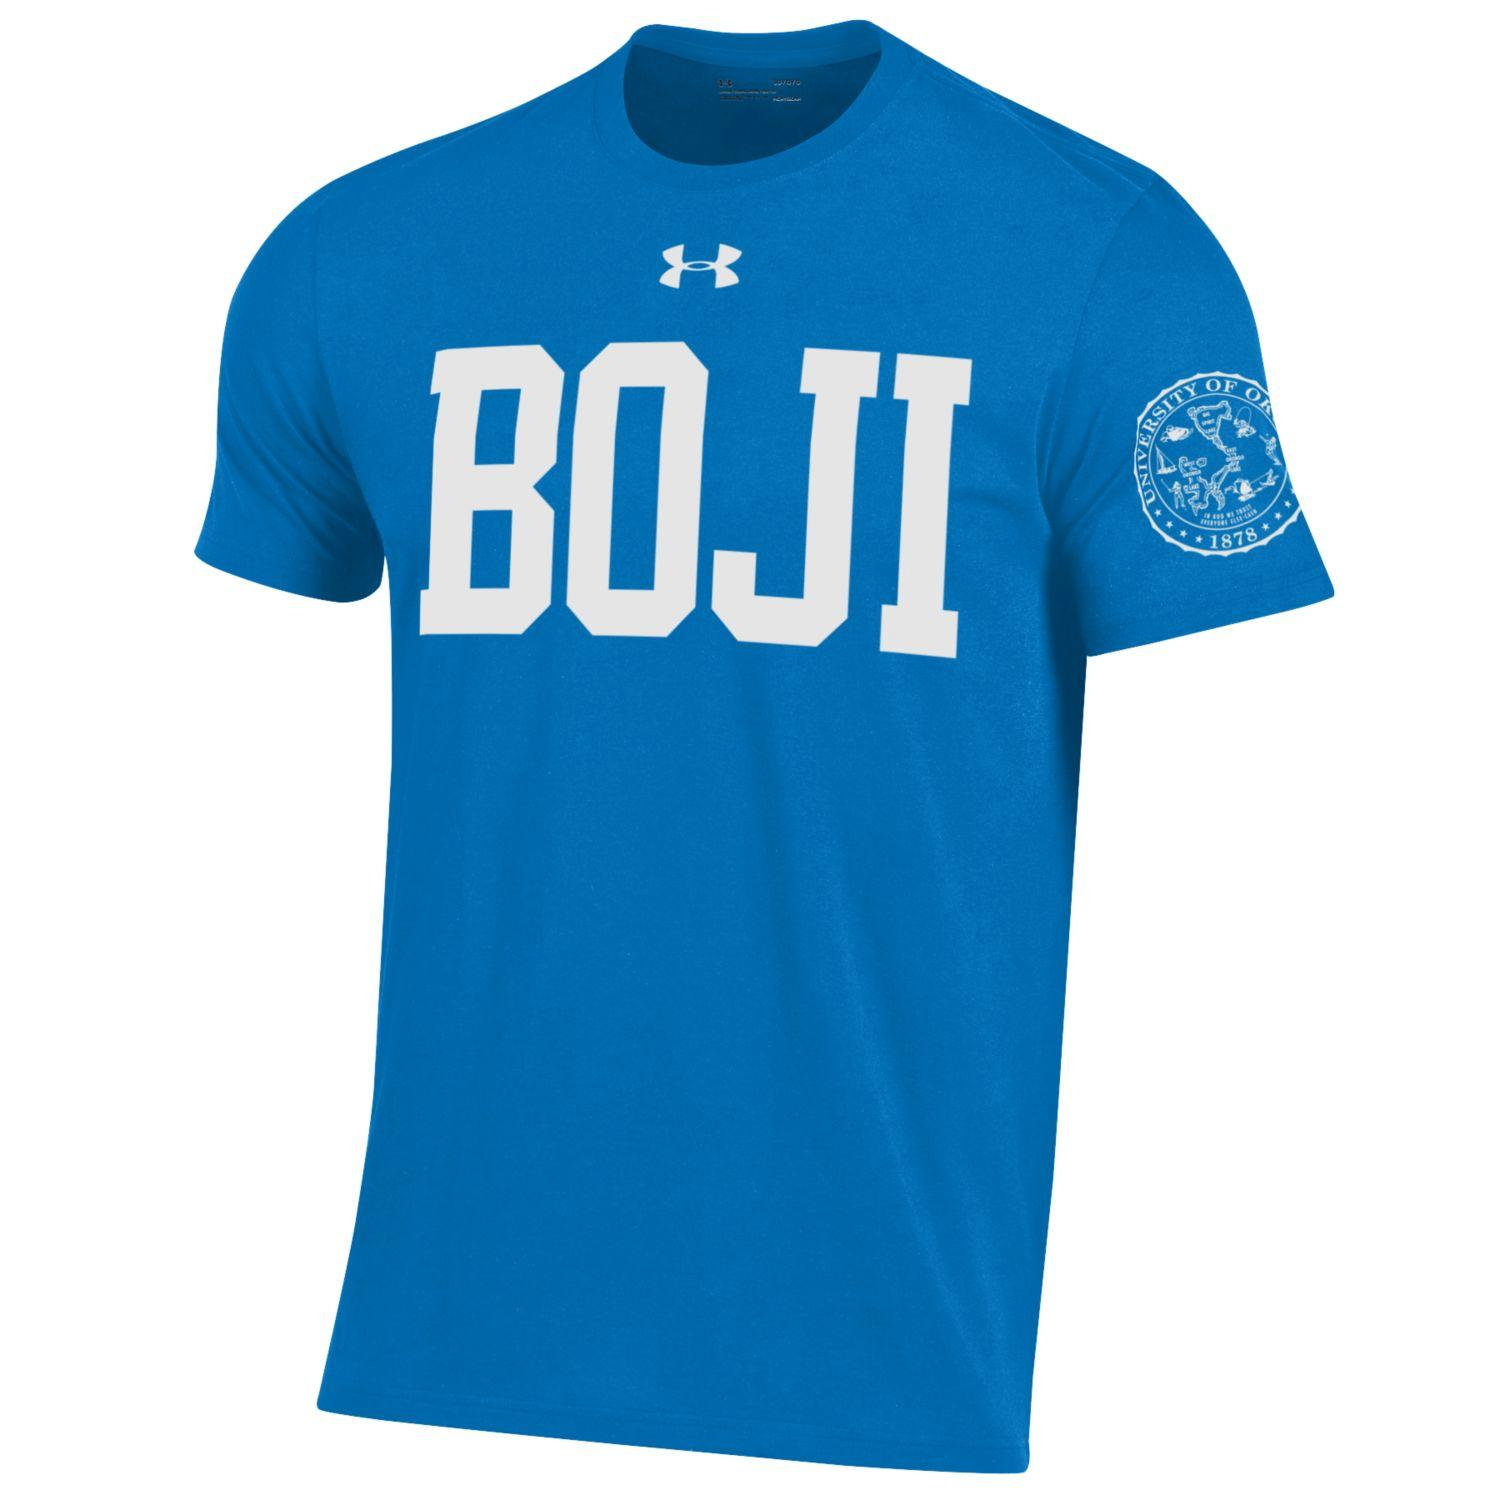 Performance Cotton Short Sleeve BOJI Tee - Powder Keg